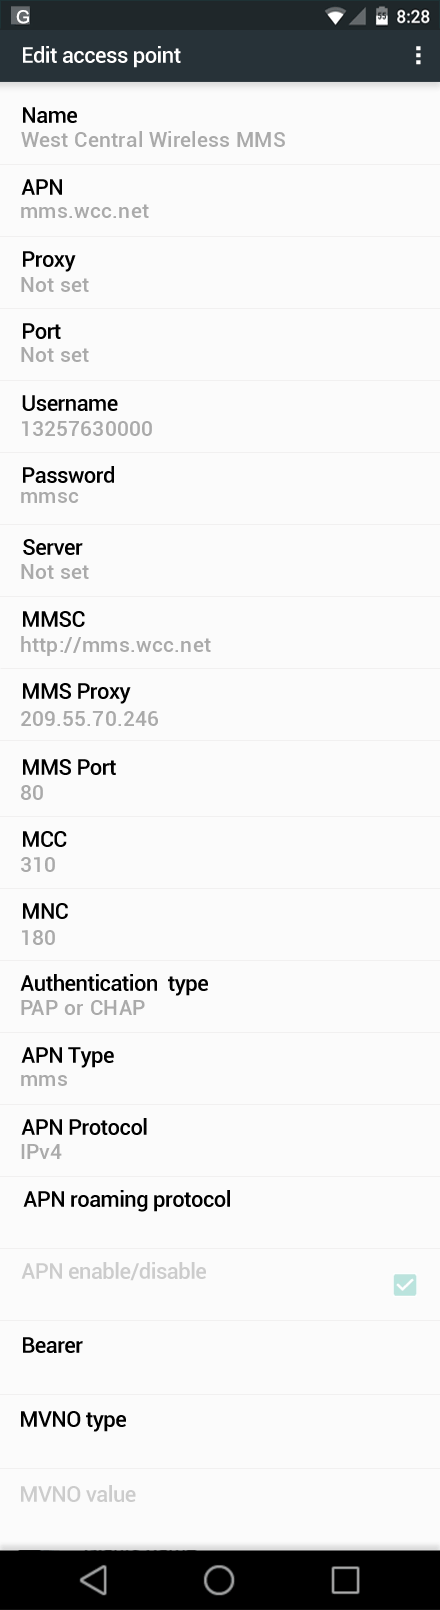 West Central Wireless MMS APN settings for Android Marshmallow screenshot